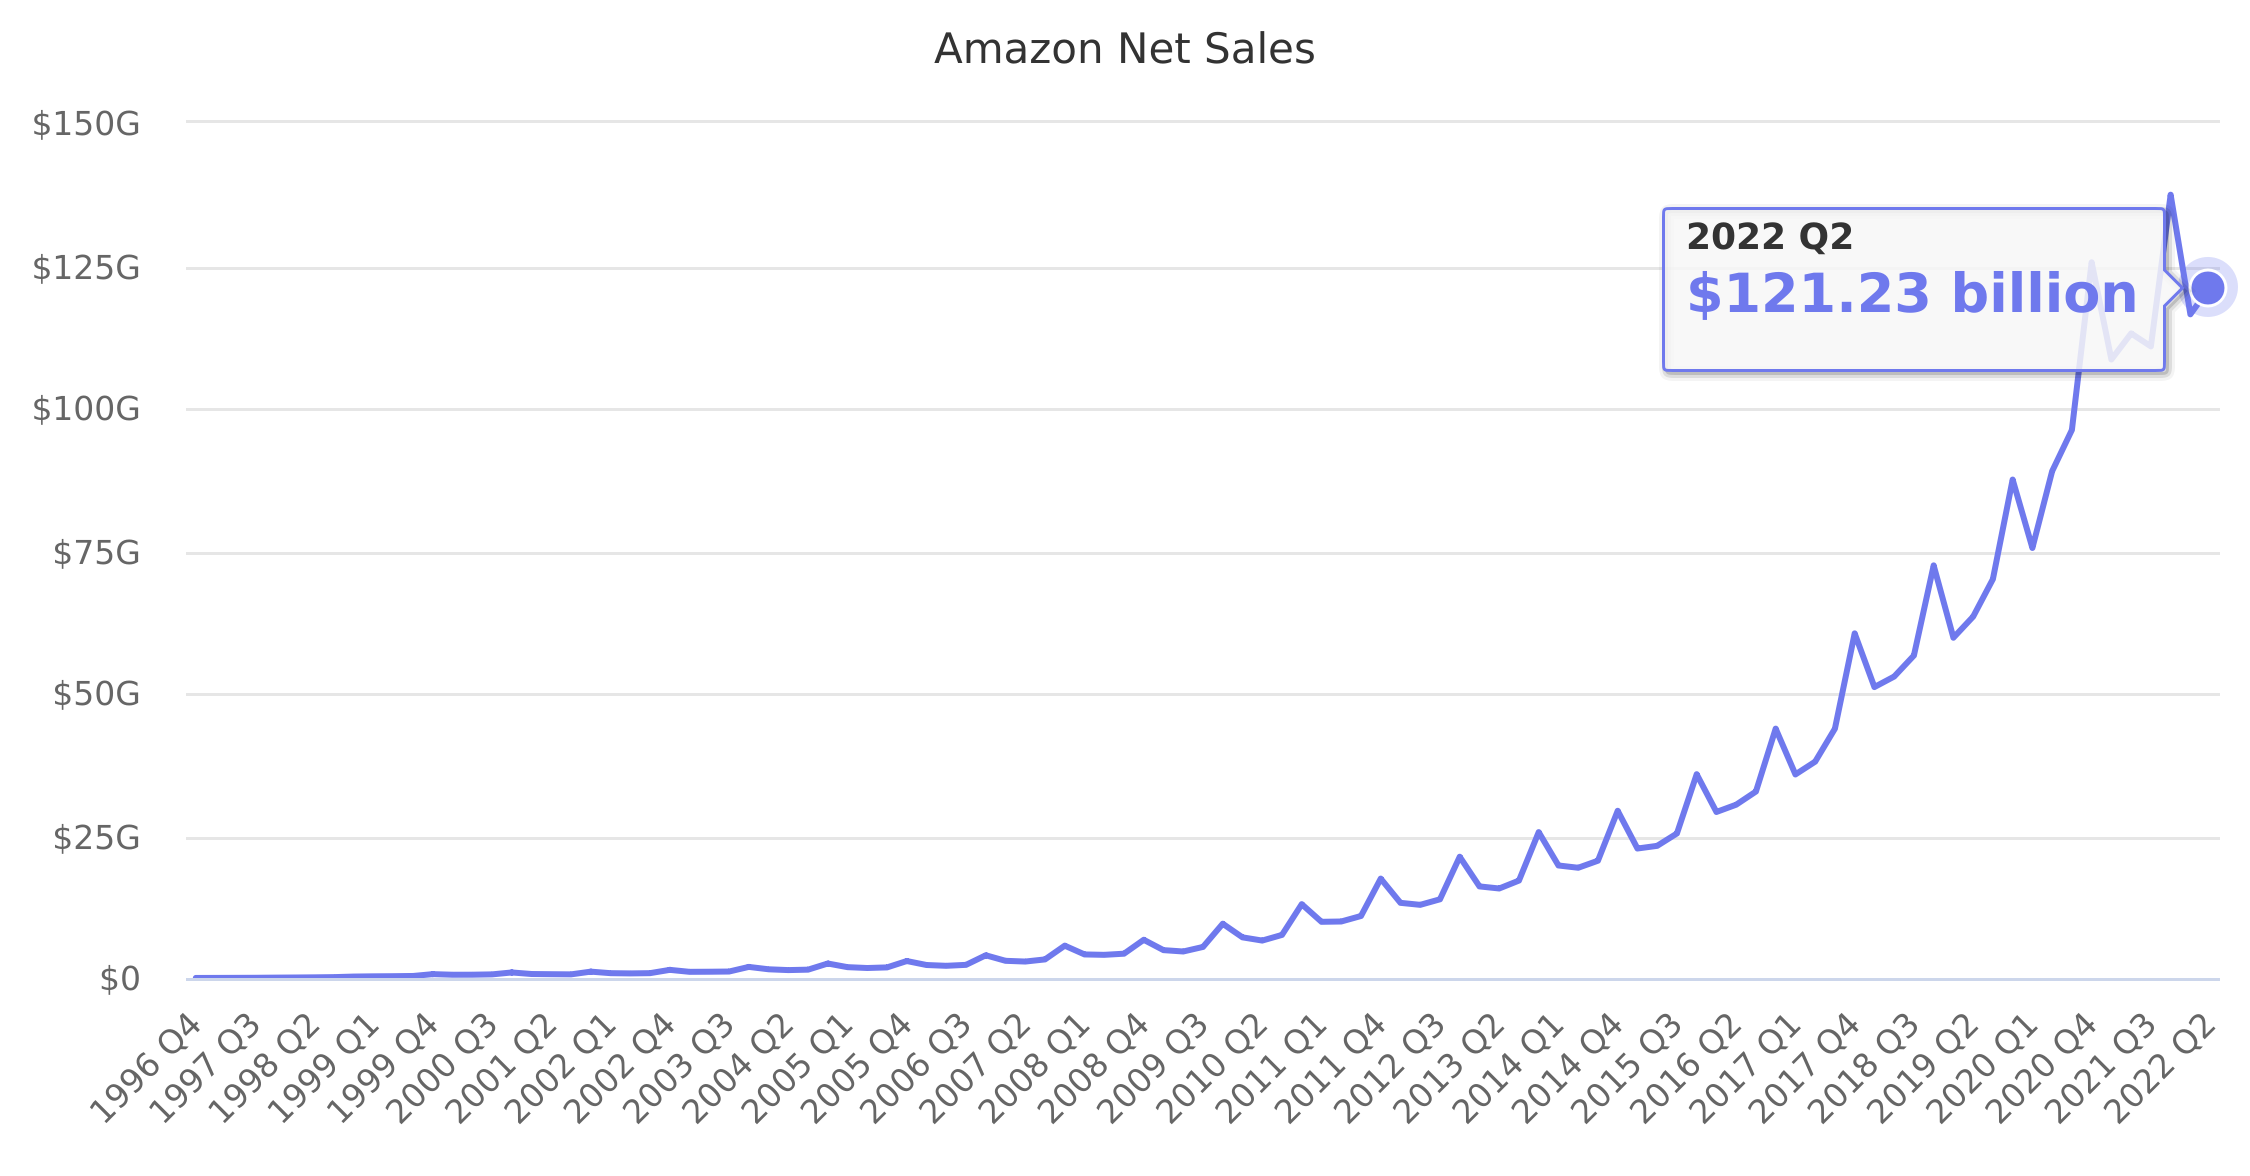 Amazon Net Sales 1996-2018